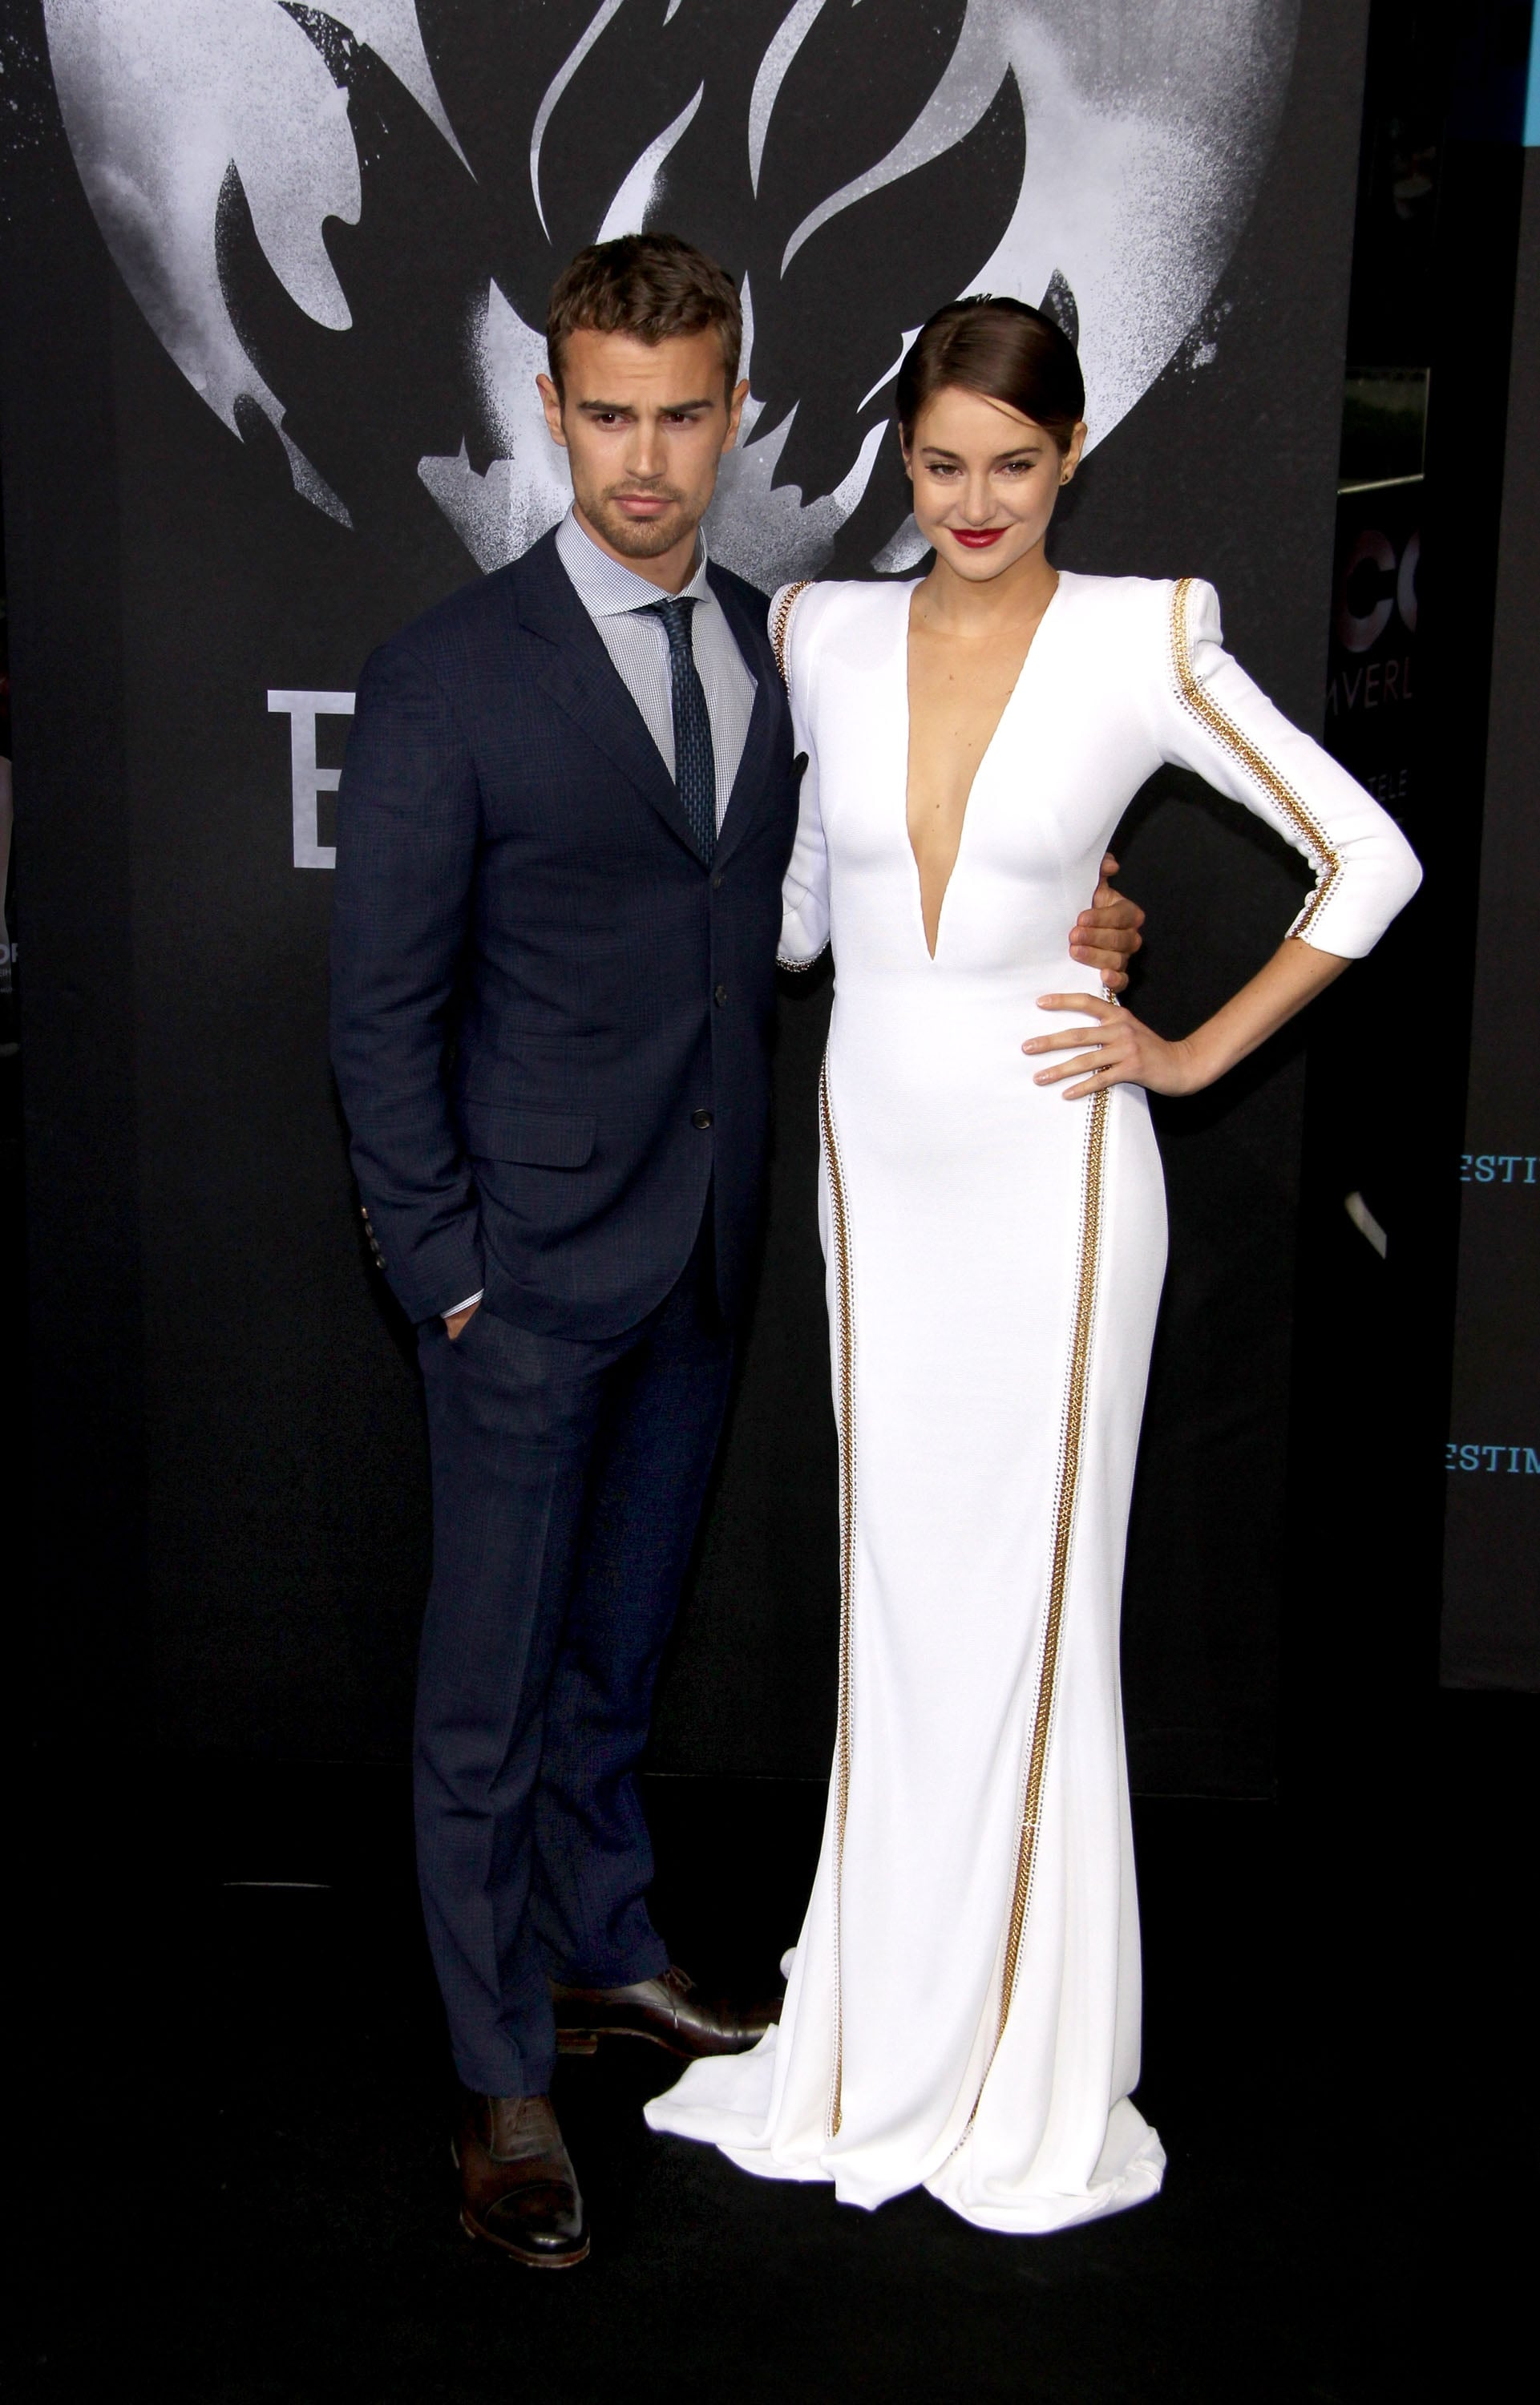 Shailene Woodley in White Zuhair Murad Gown at the 2014 Divergent Berlin Premiere